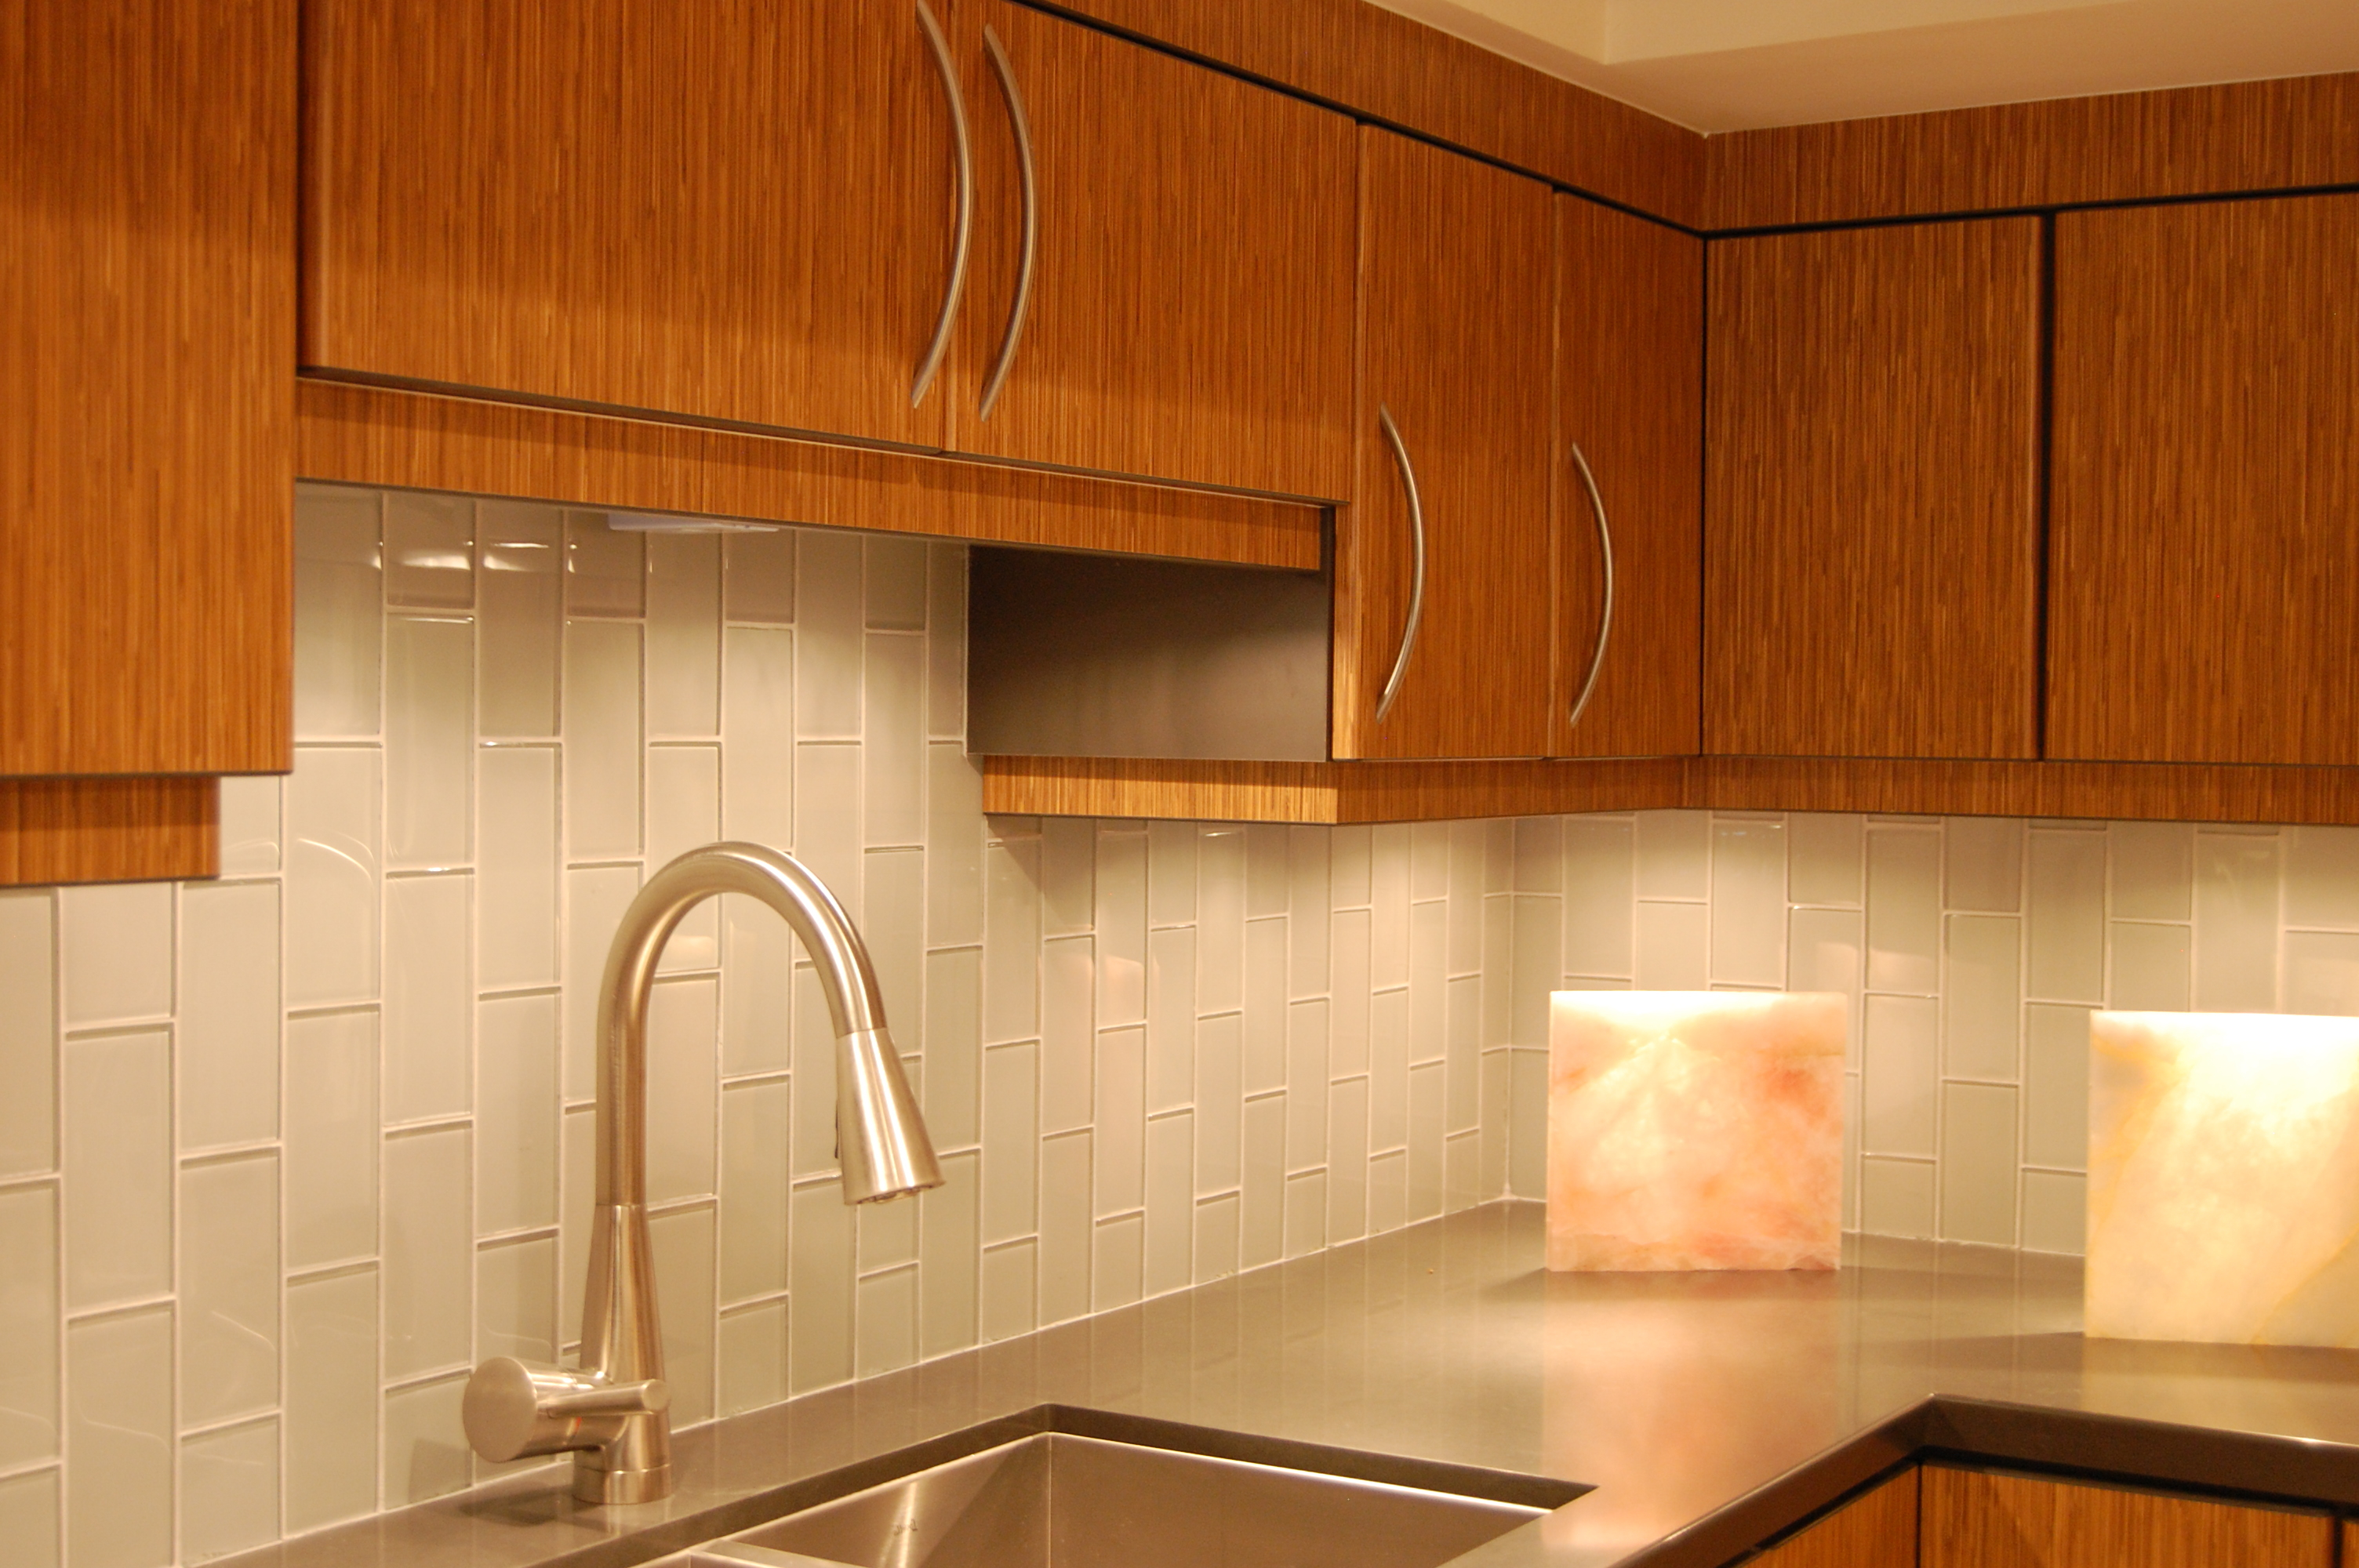 Kitchen Backsplash Pictures Of Subway Tile For Kitchen Decorations Ornament Ideas Backsplashes Wall Ceramic Kitchens How To Patterns Travertine Mosaic Wholesale Flooring Subway Tile (View 8 of 38)